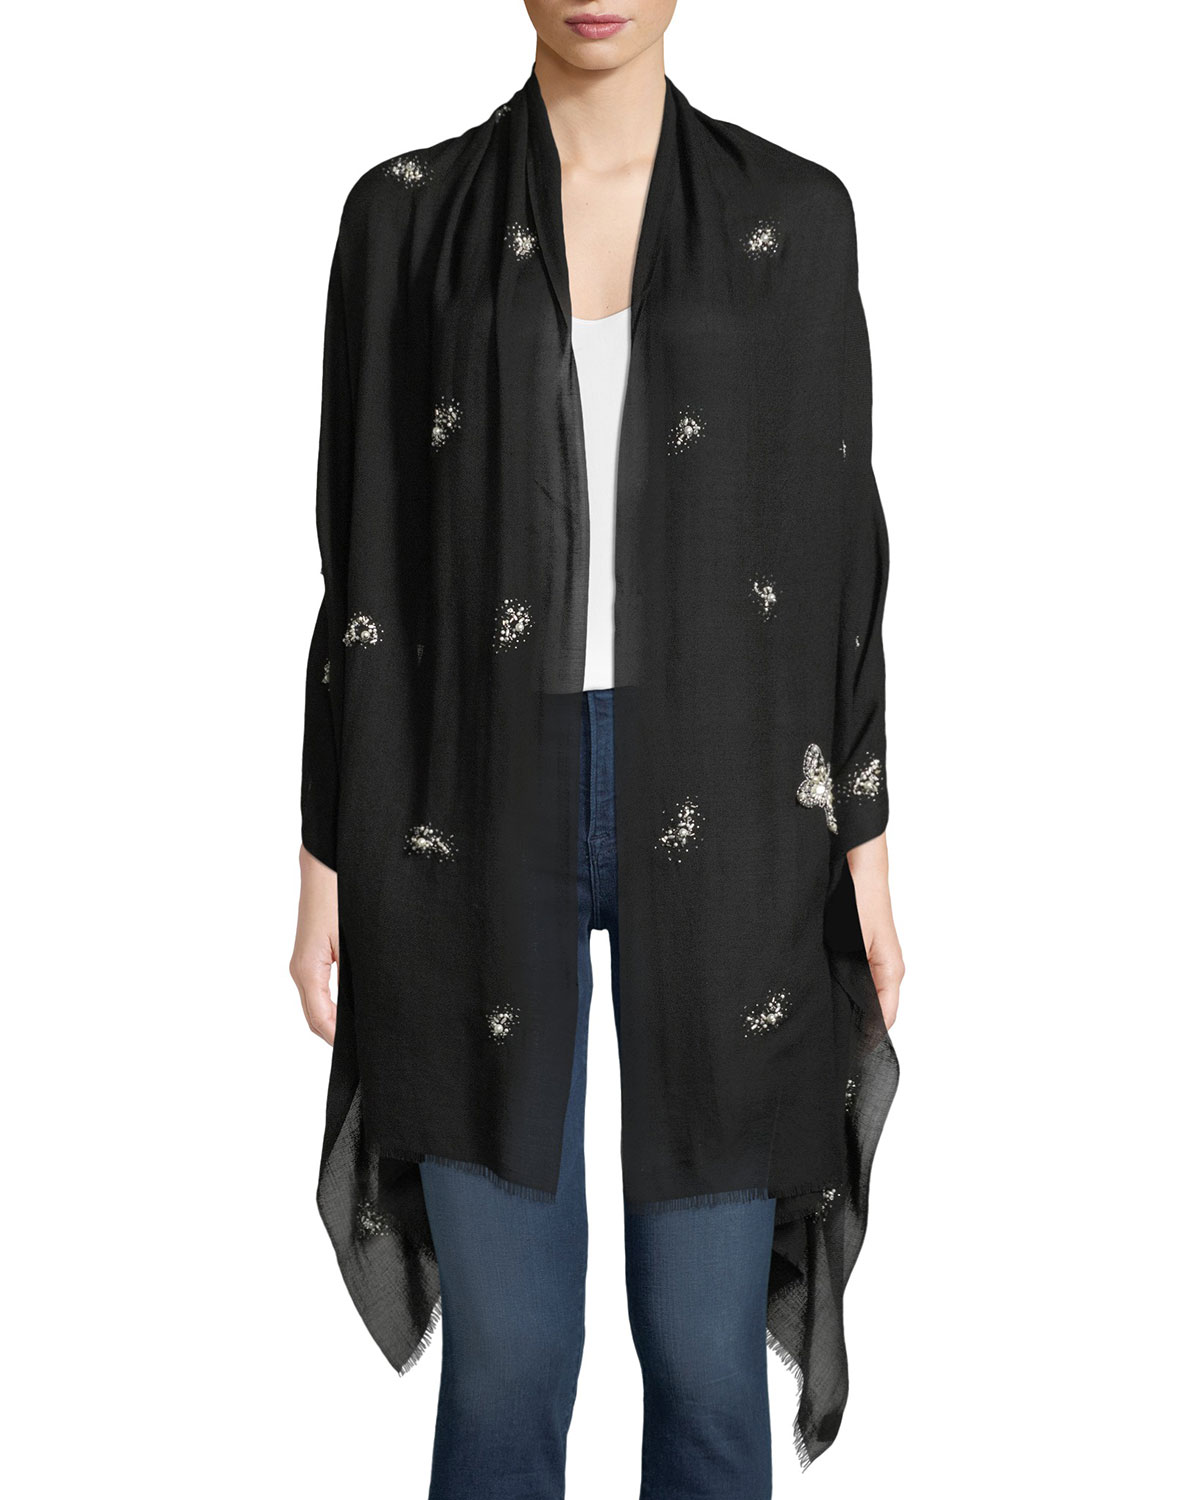 K JANAVI Pearlescent Butterfly Cashmere Scarf in Black